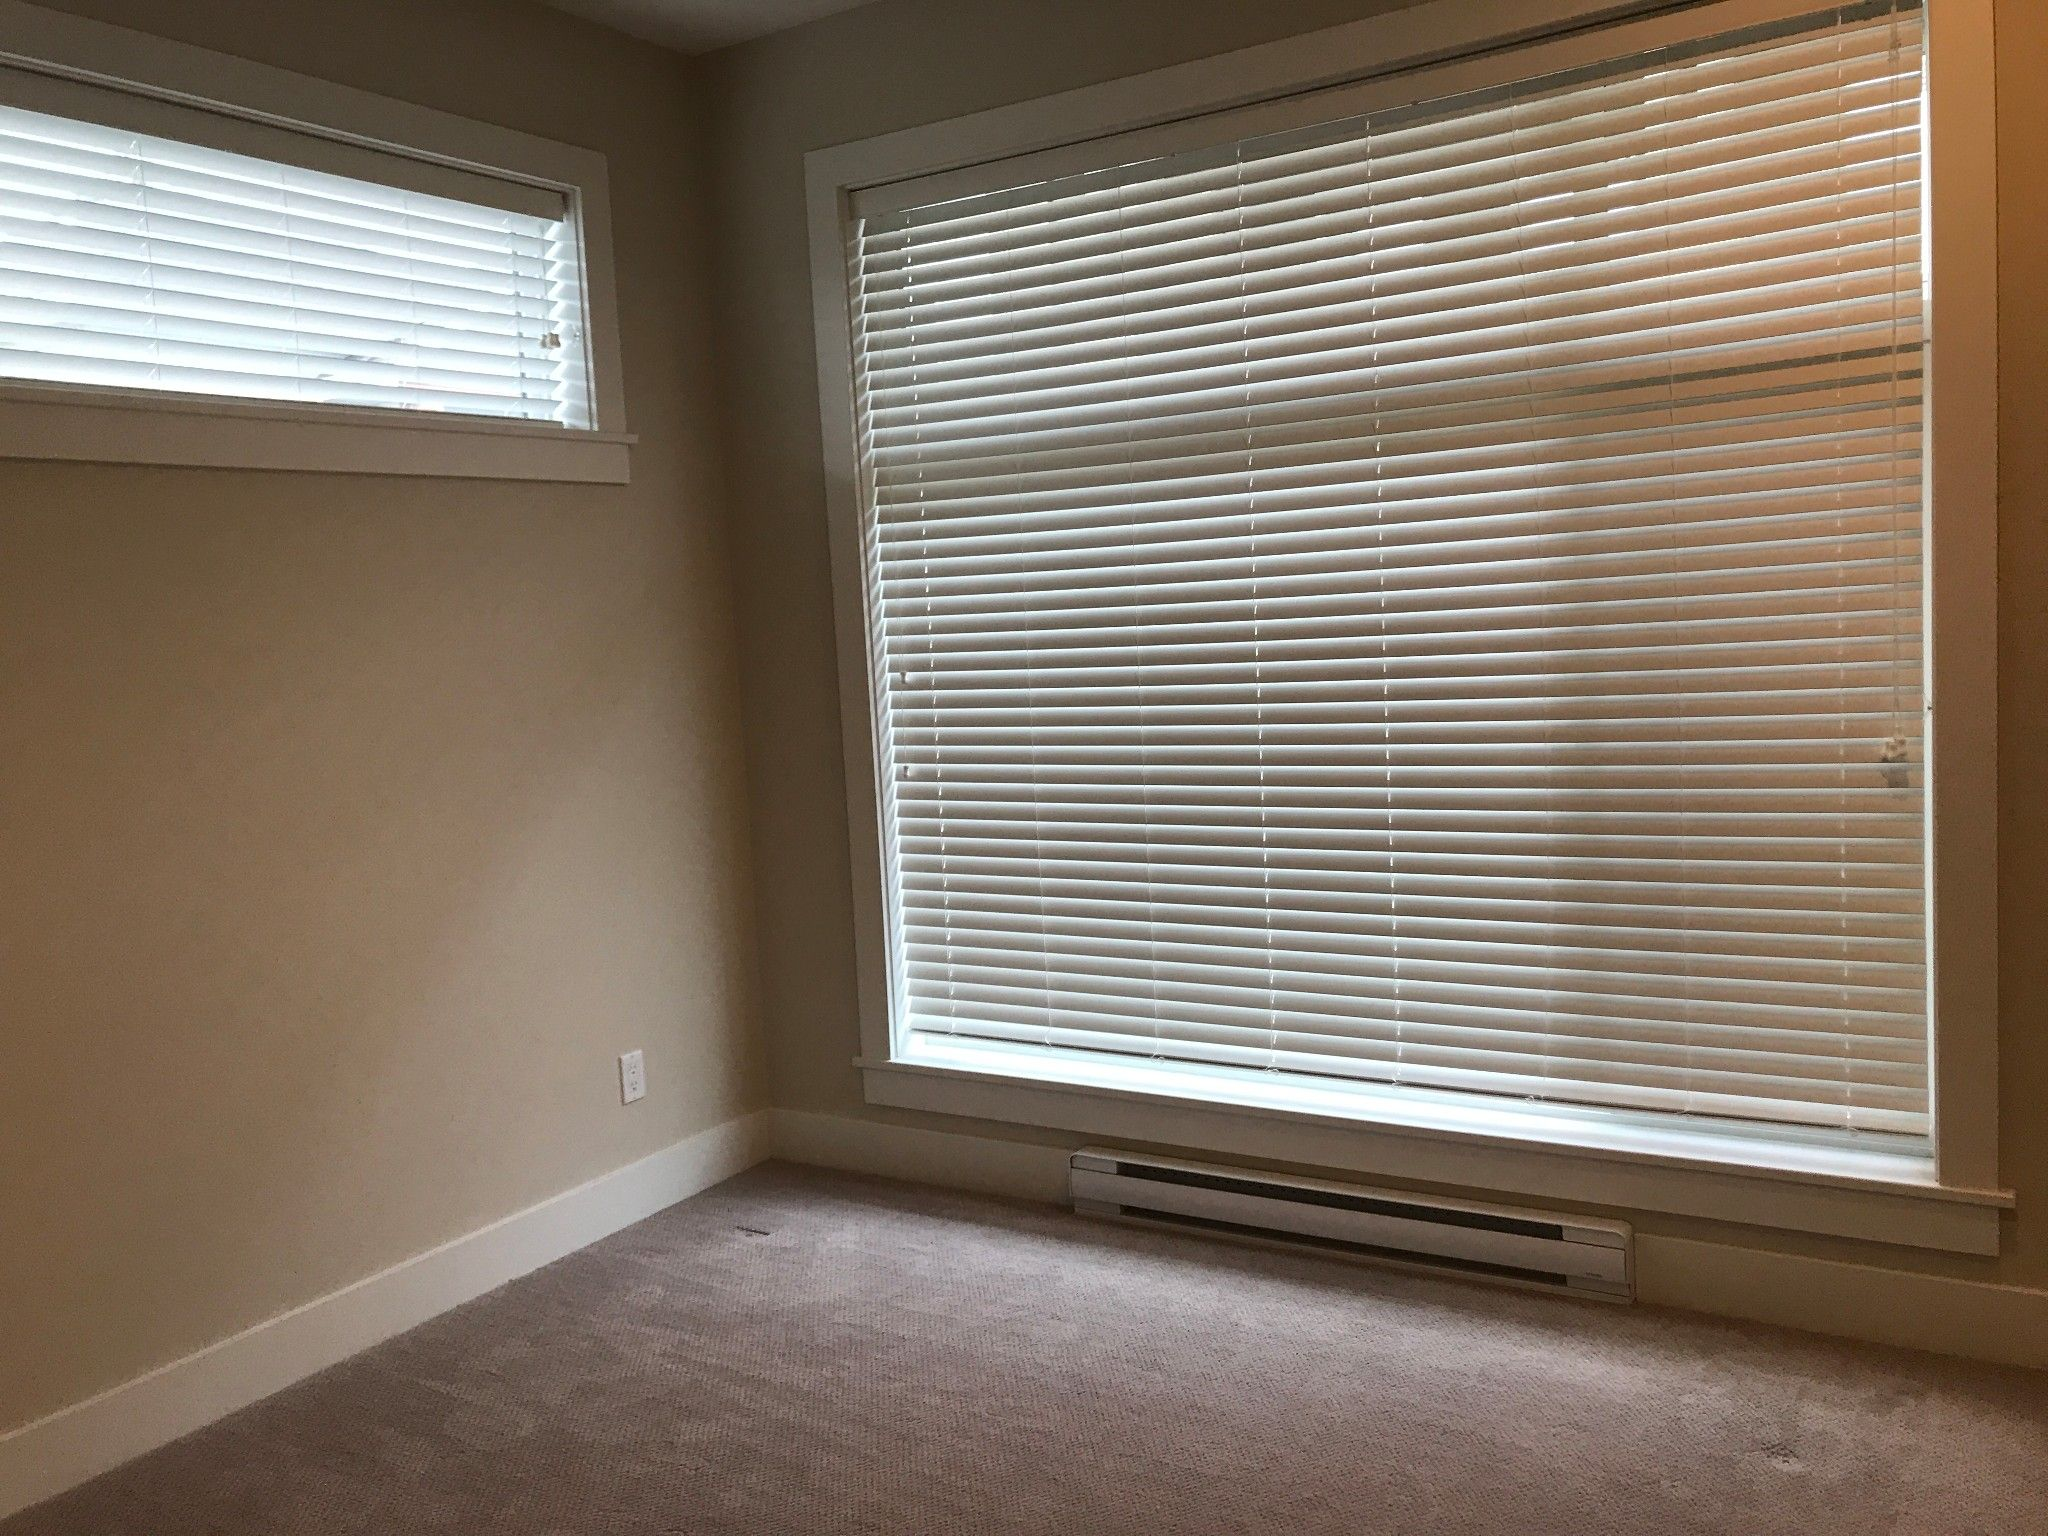 Photo 9: Photos: #38 45615 Tamihi Way in Chilliwack: Garrison Crossing Townhouse for rent